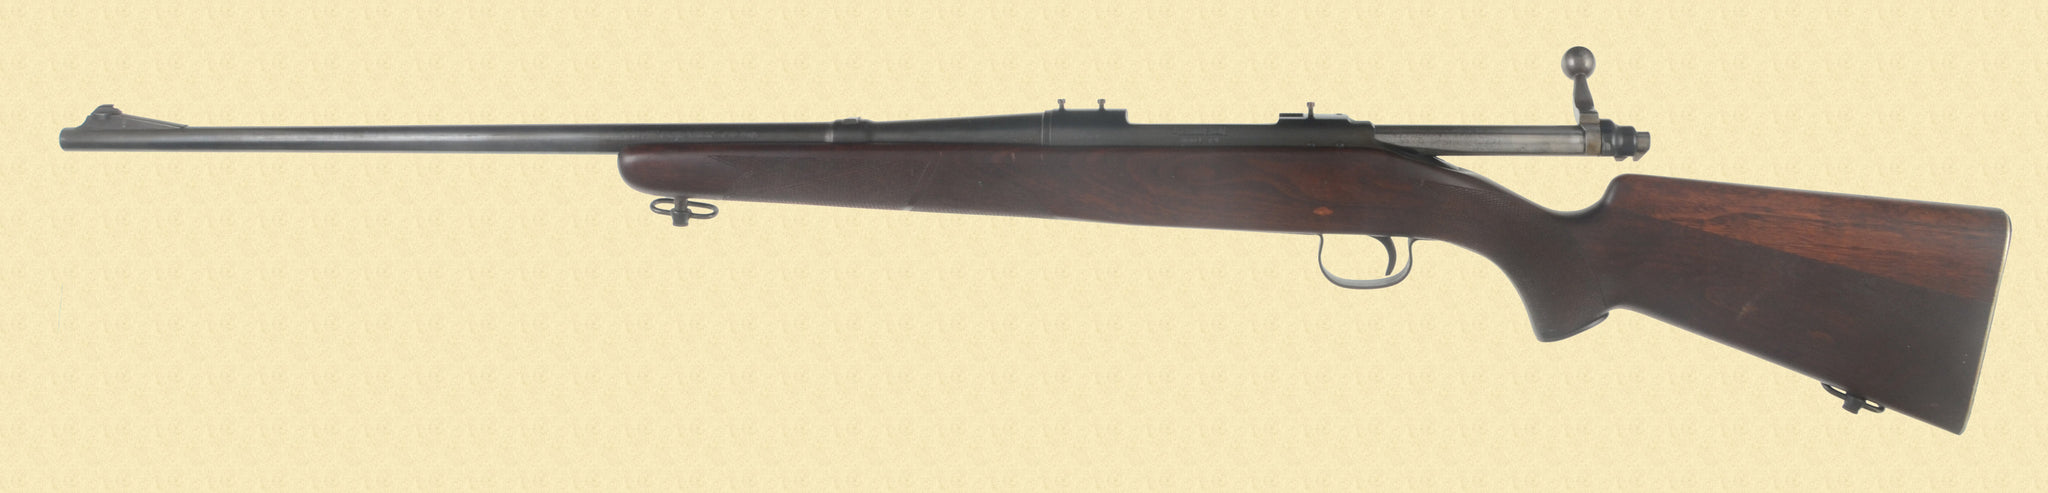 REMINGTON 721